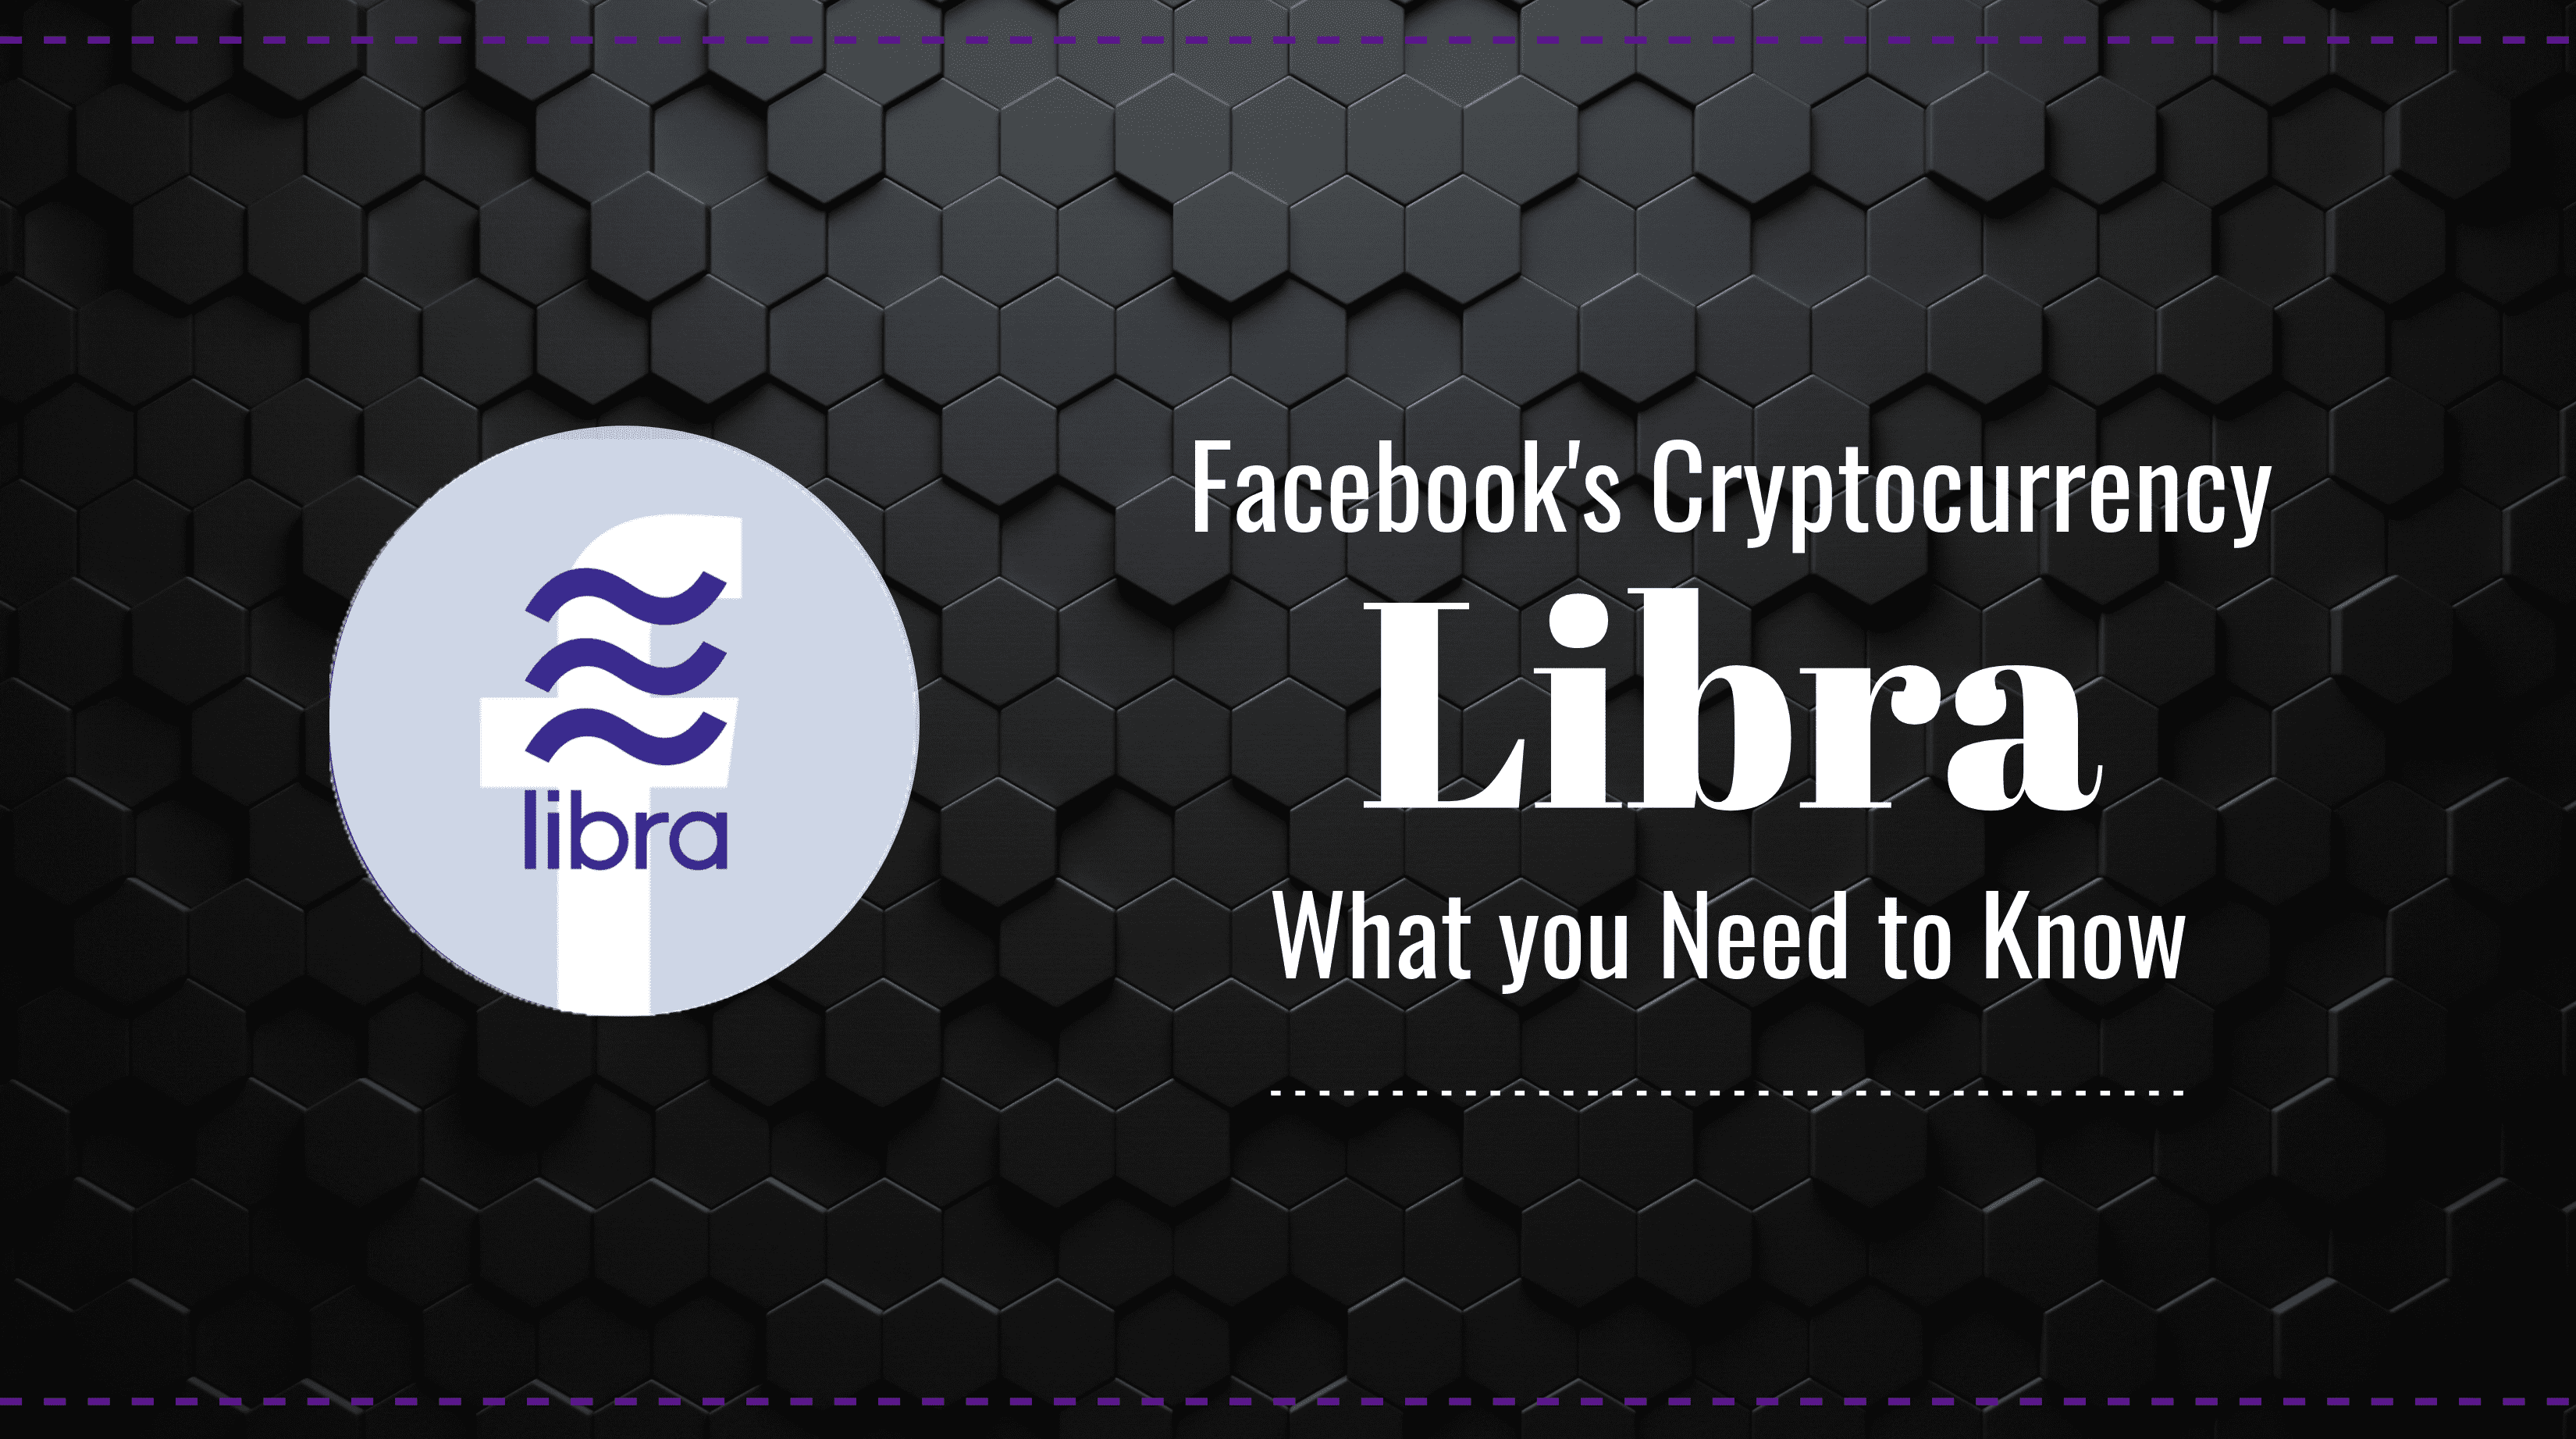 Libra, Facebook's Cryptocurrency